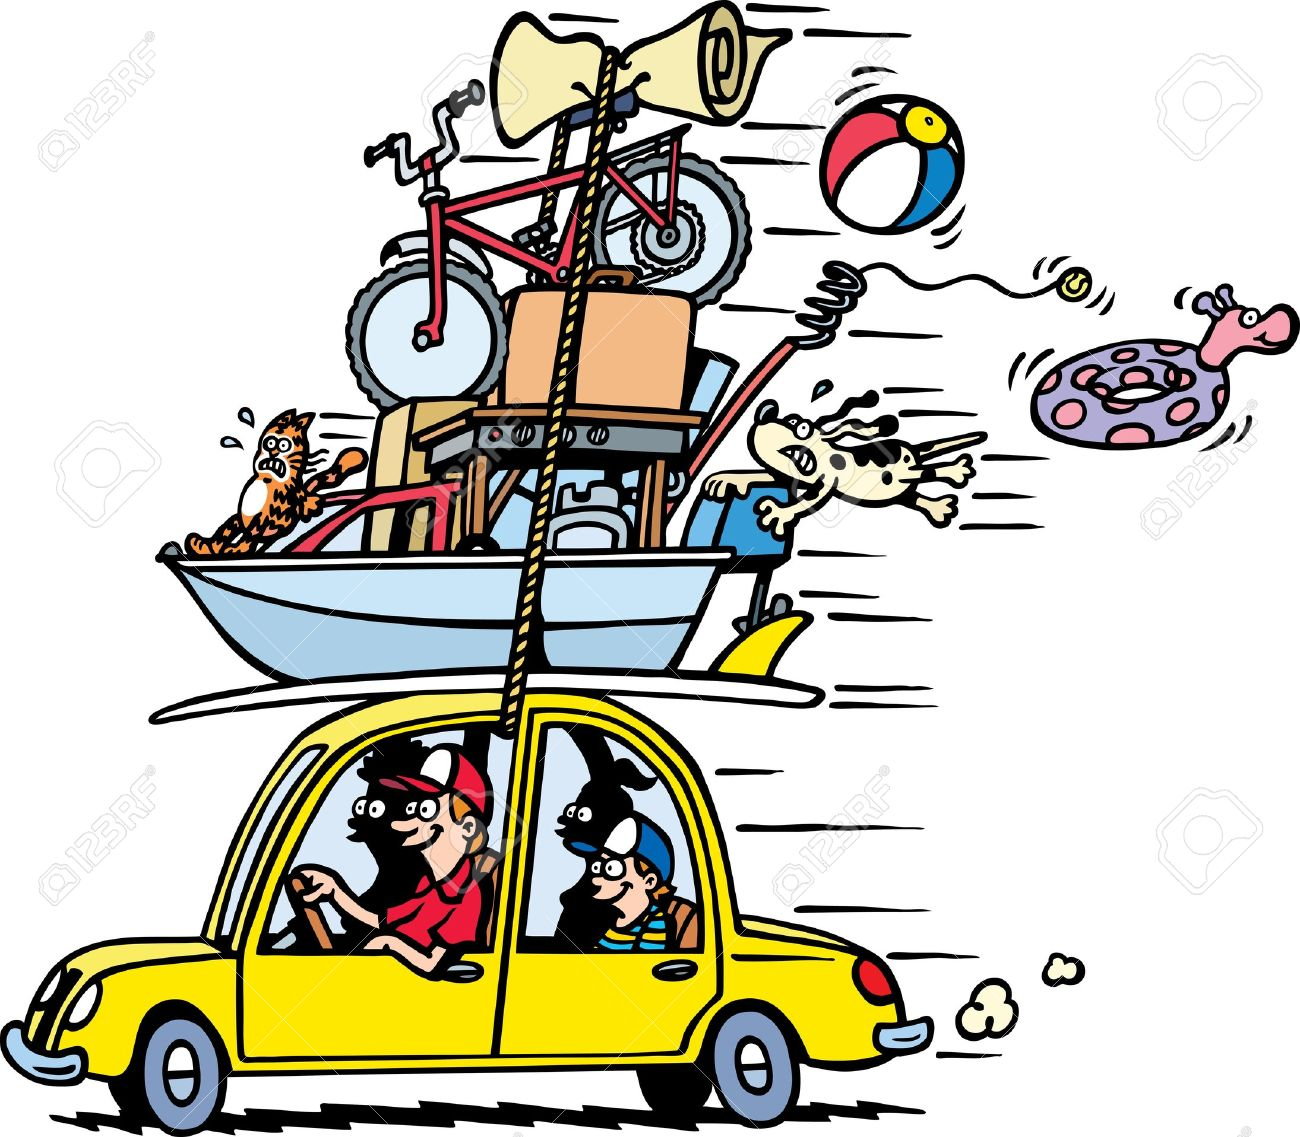 Bing vacation clipart picture transparent stock Family Vacation Clipart   Free download best Family Vacation Clipart ... picture transparent stock